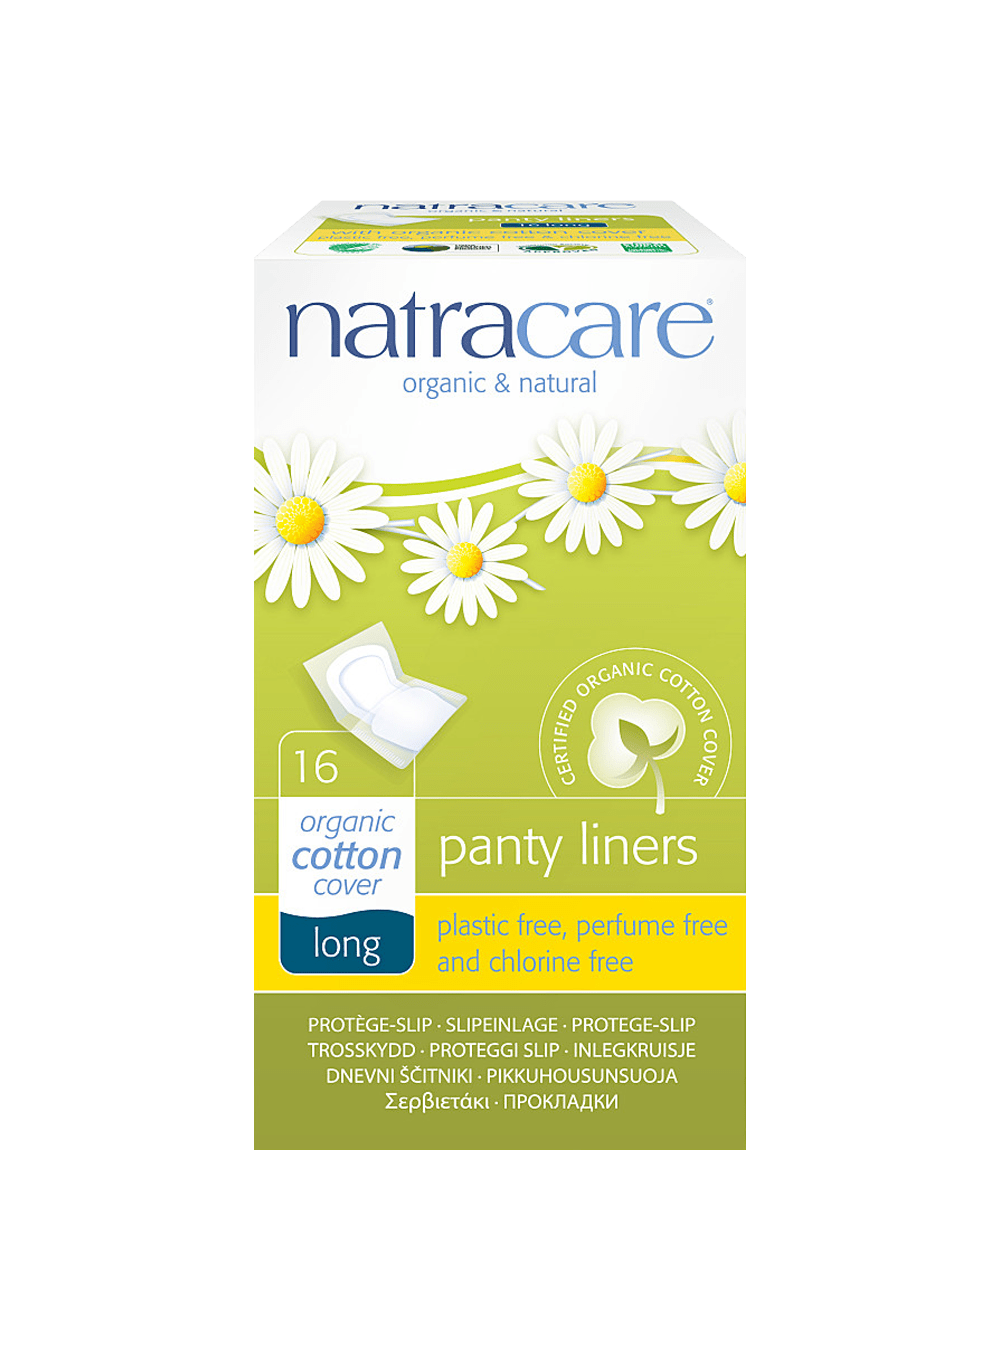 Natracare Long Panty Liners (Wrapped)